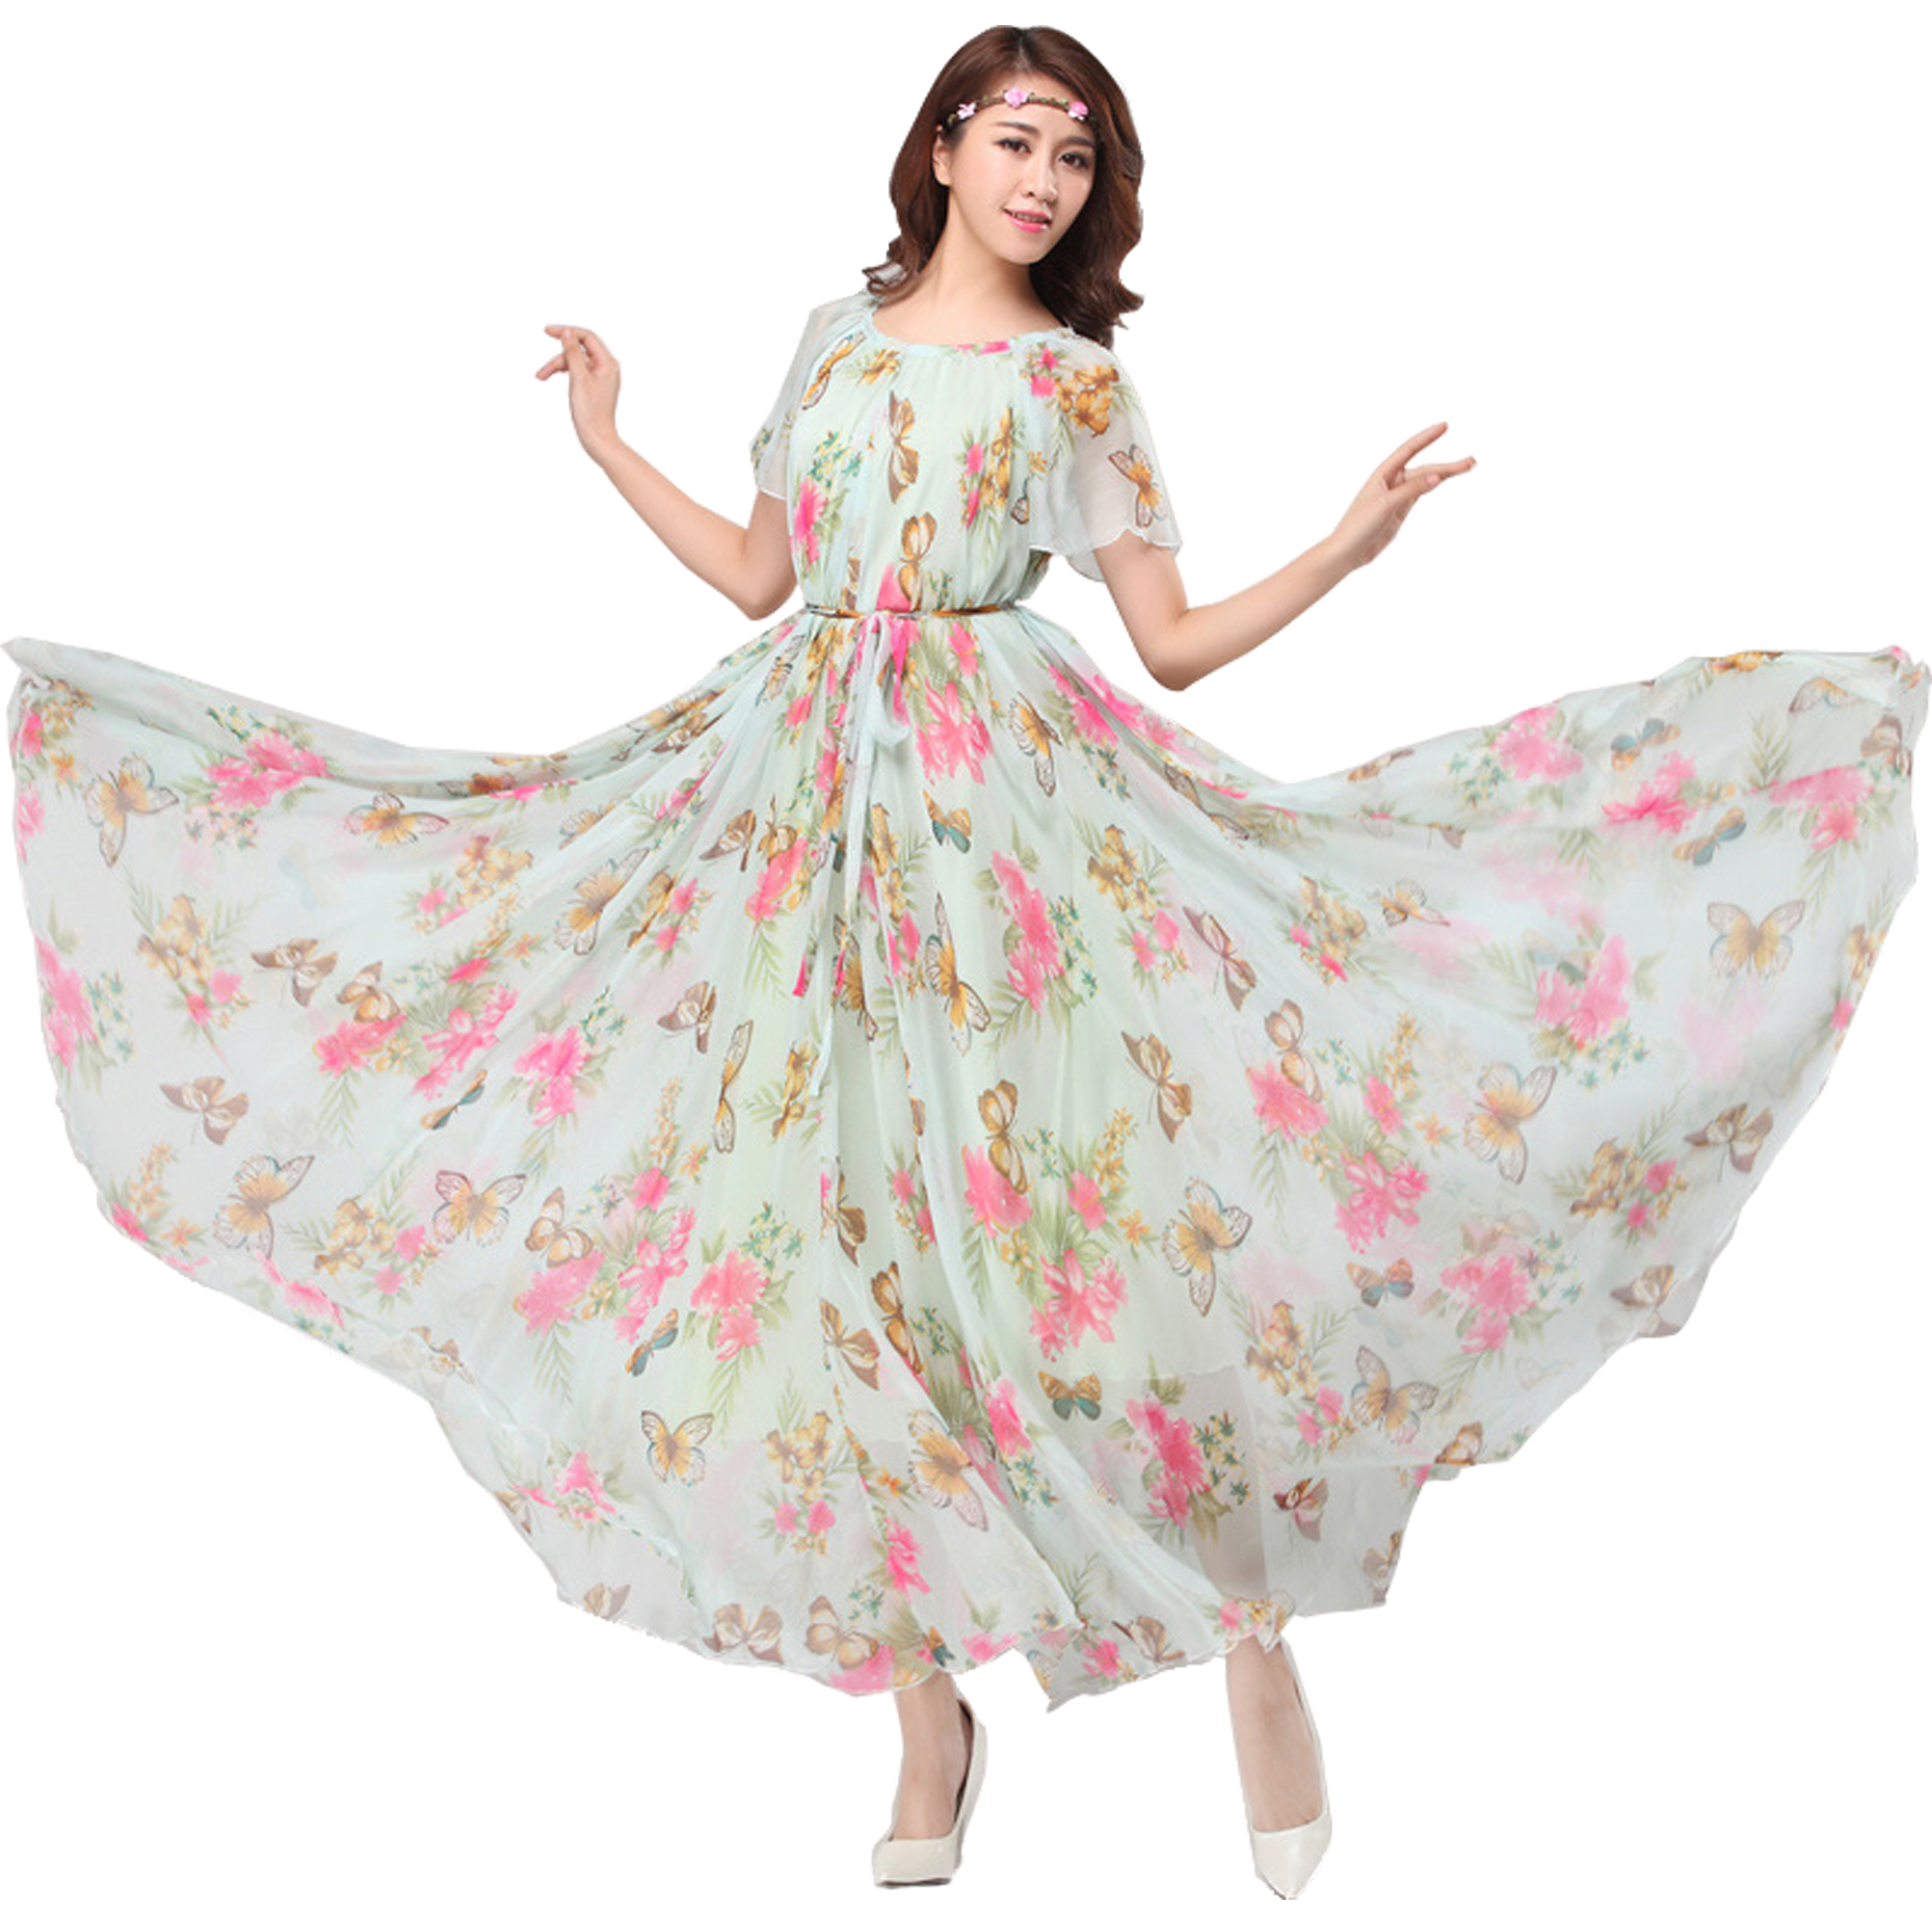 Chiffon Butterfly Sleeves Bridesmaid Holiday Beach Floral Maxi Dress